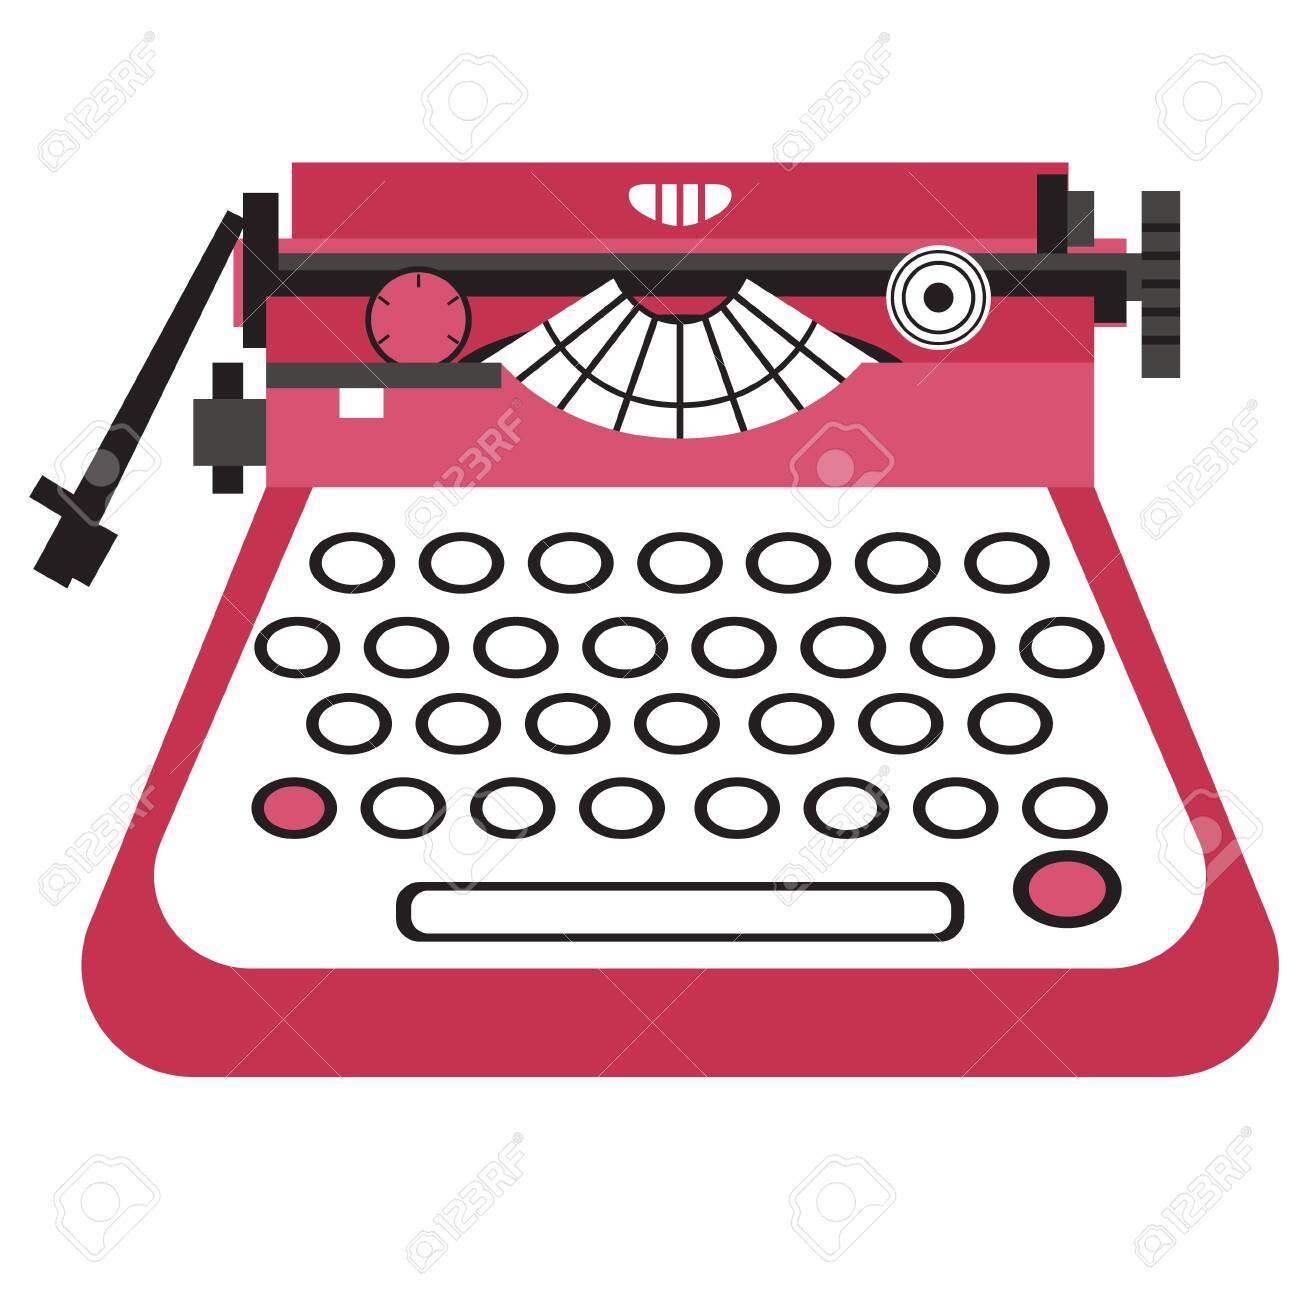 Typewriter flat illustration on white. Home, lifestyle and fashion objects series. - 124213817